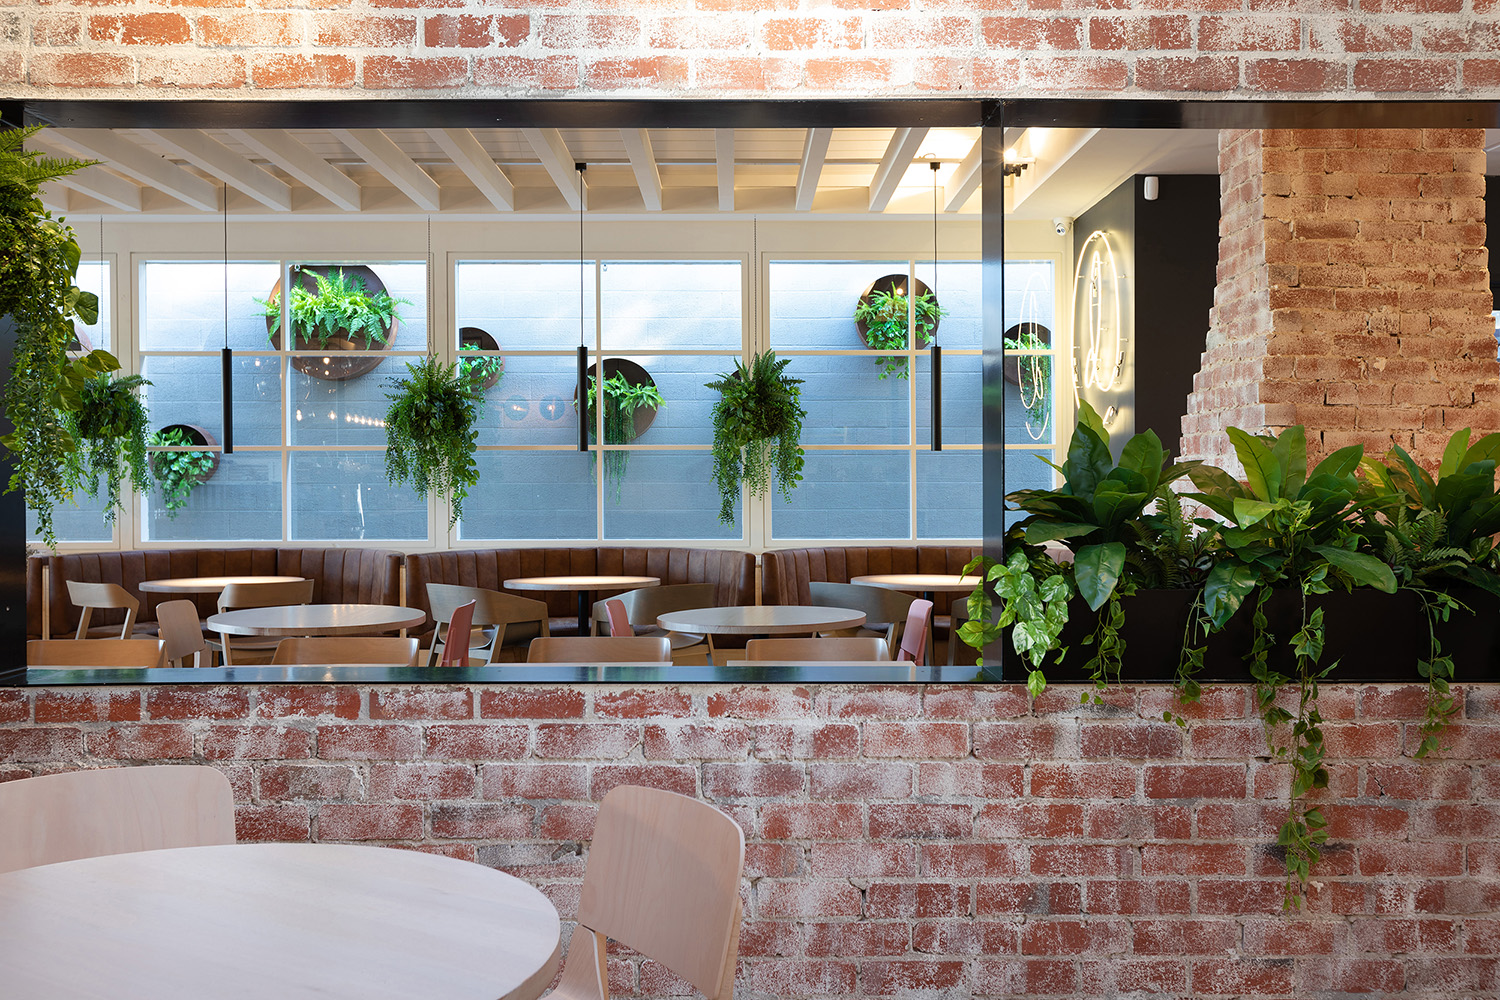 Daydreamers - Beaconsfield, Victoria